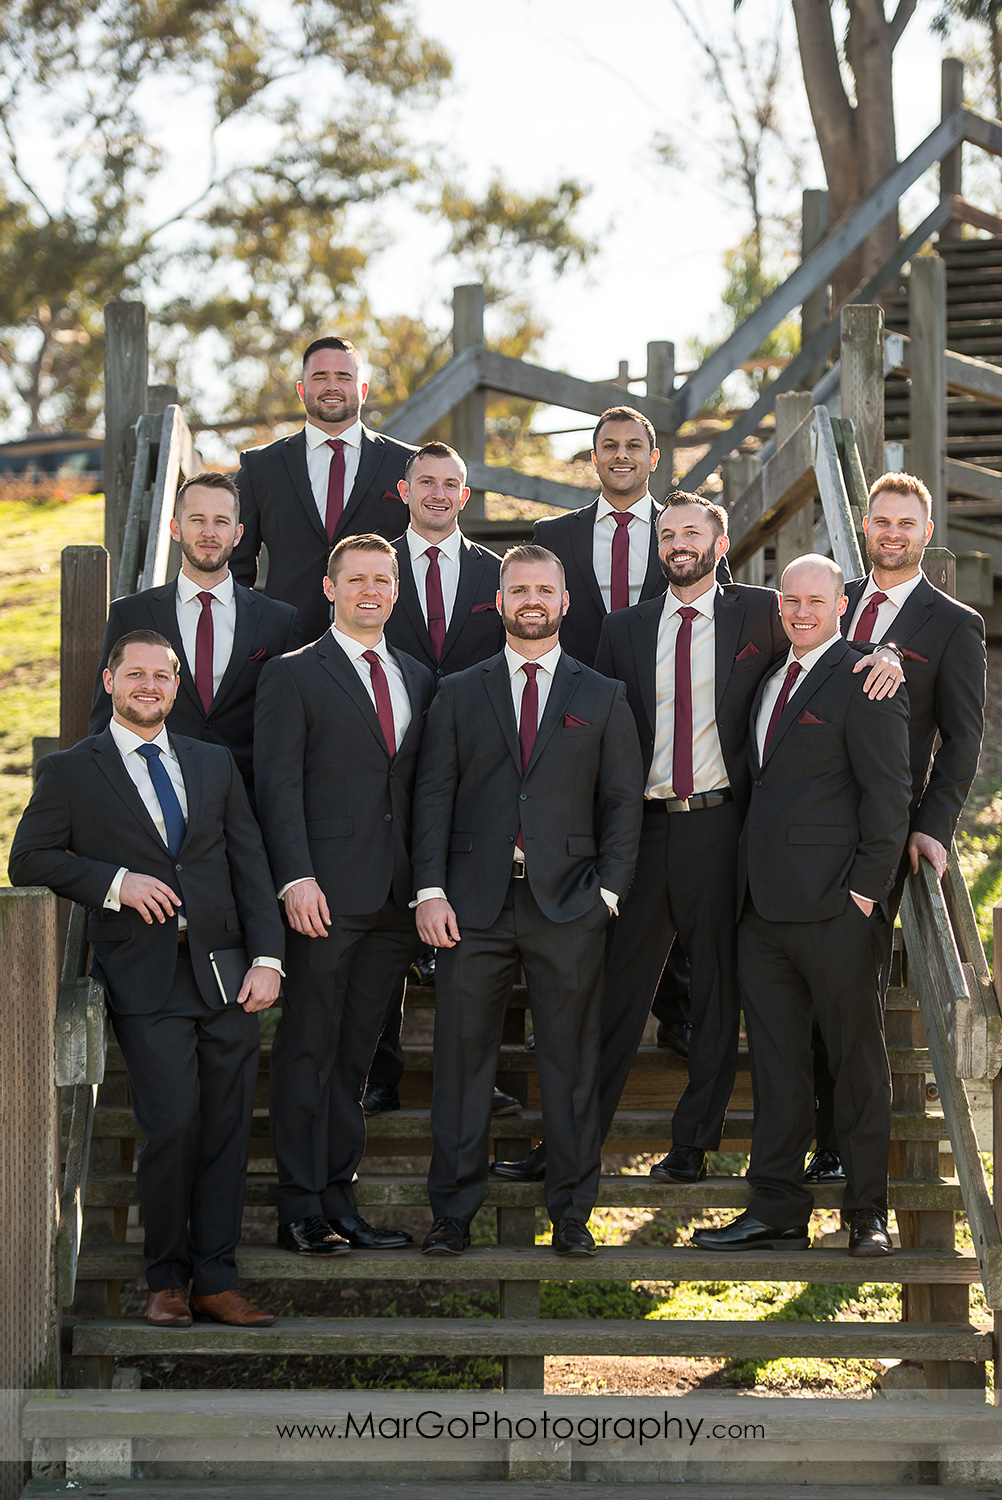 portrait of groom and groomsmen at San Diego Mission Bay Park